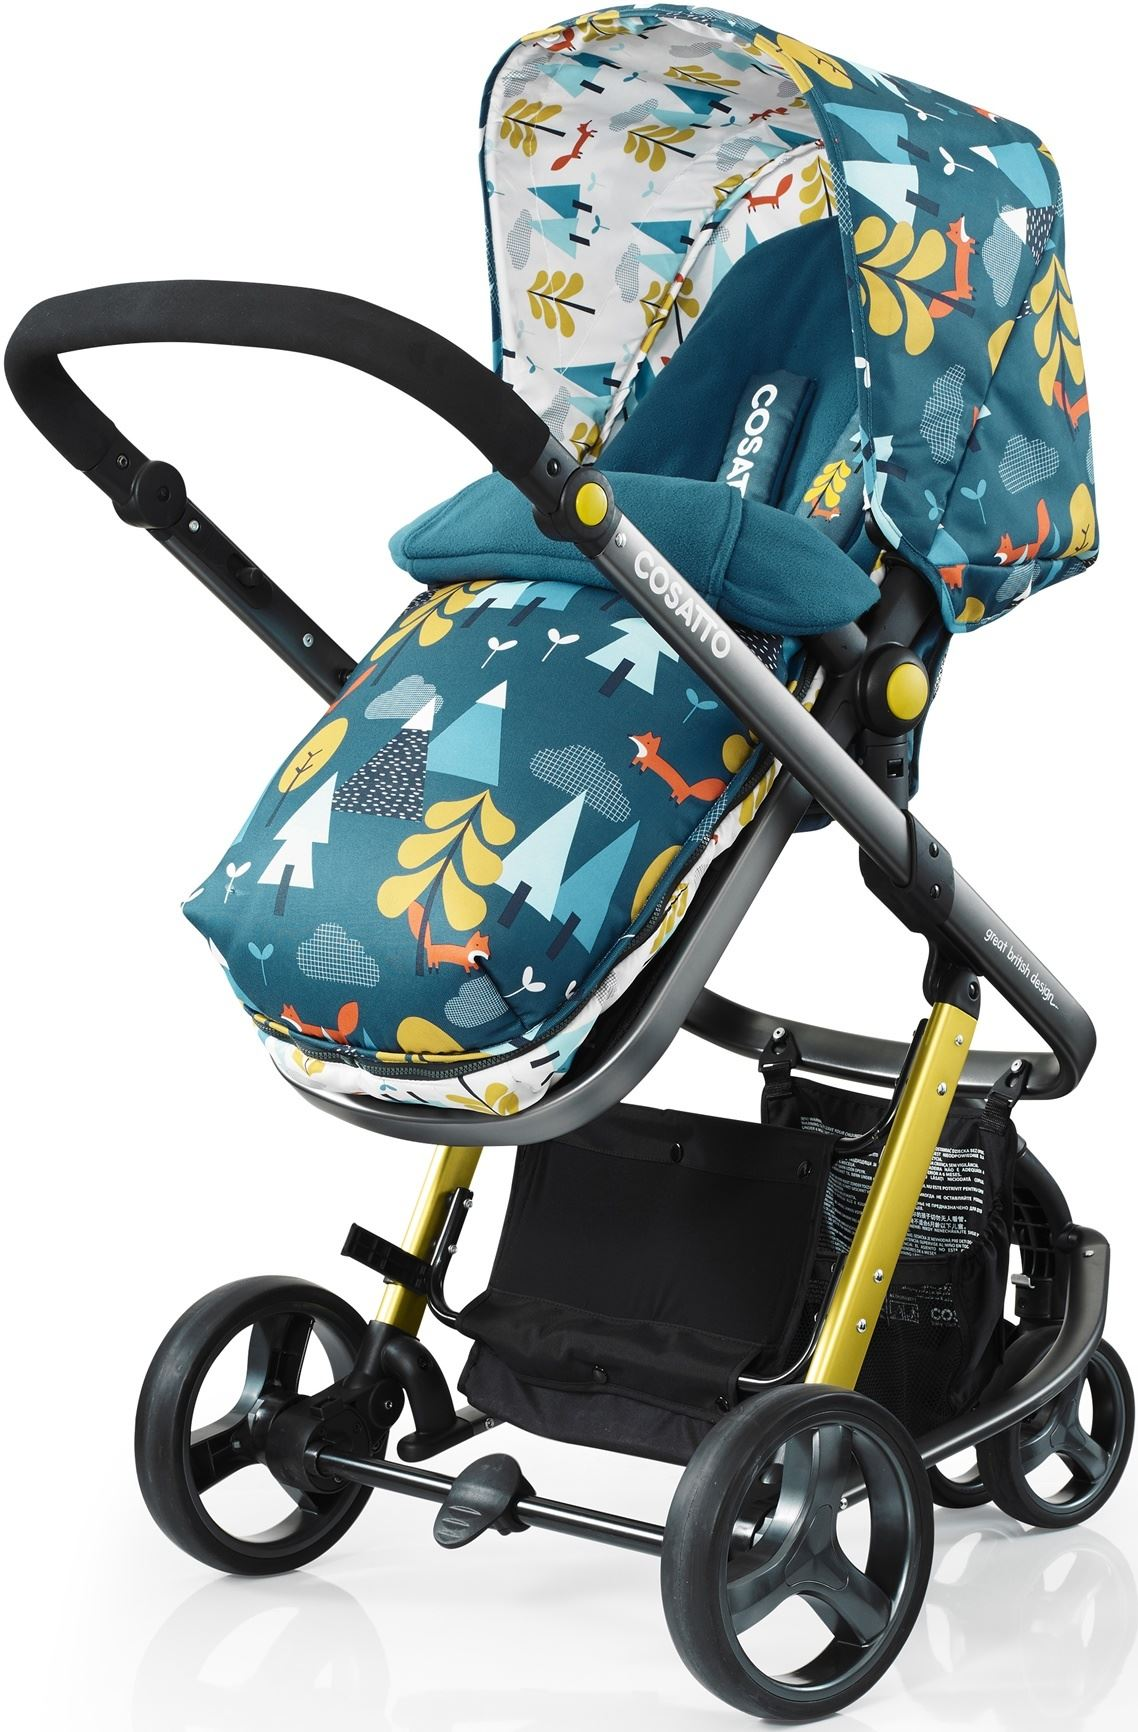 cosatto giggle 2 travel system manual